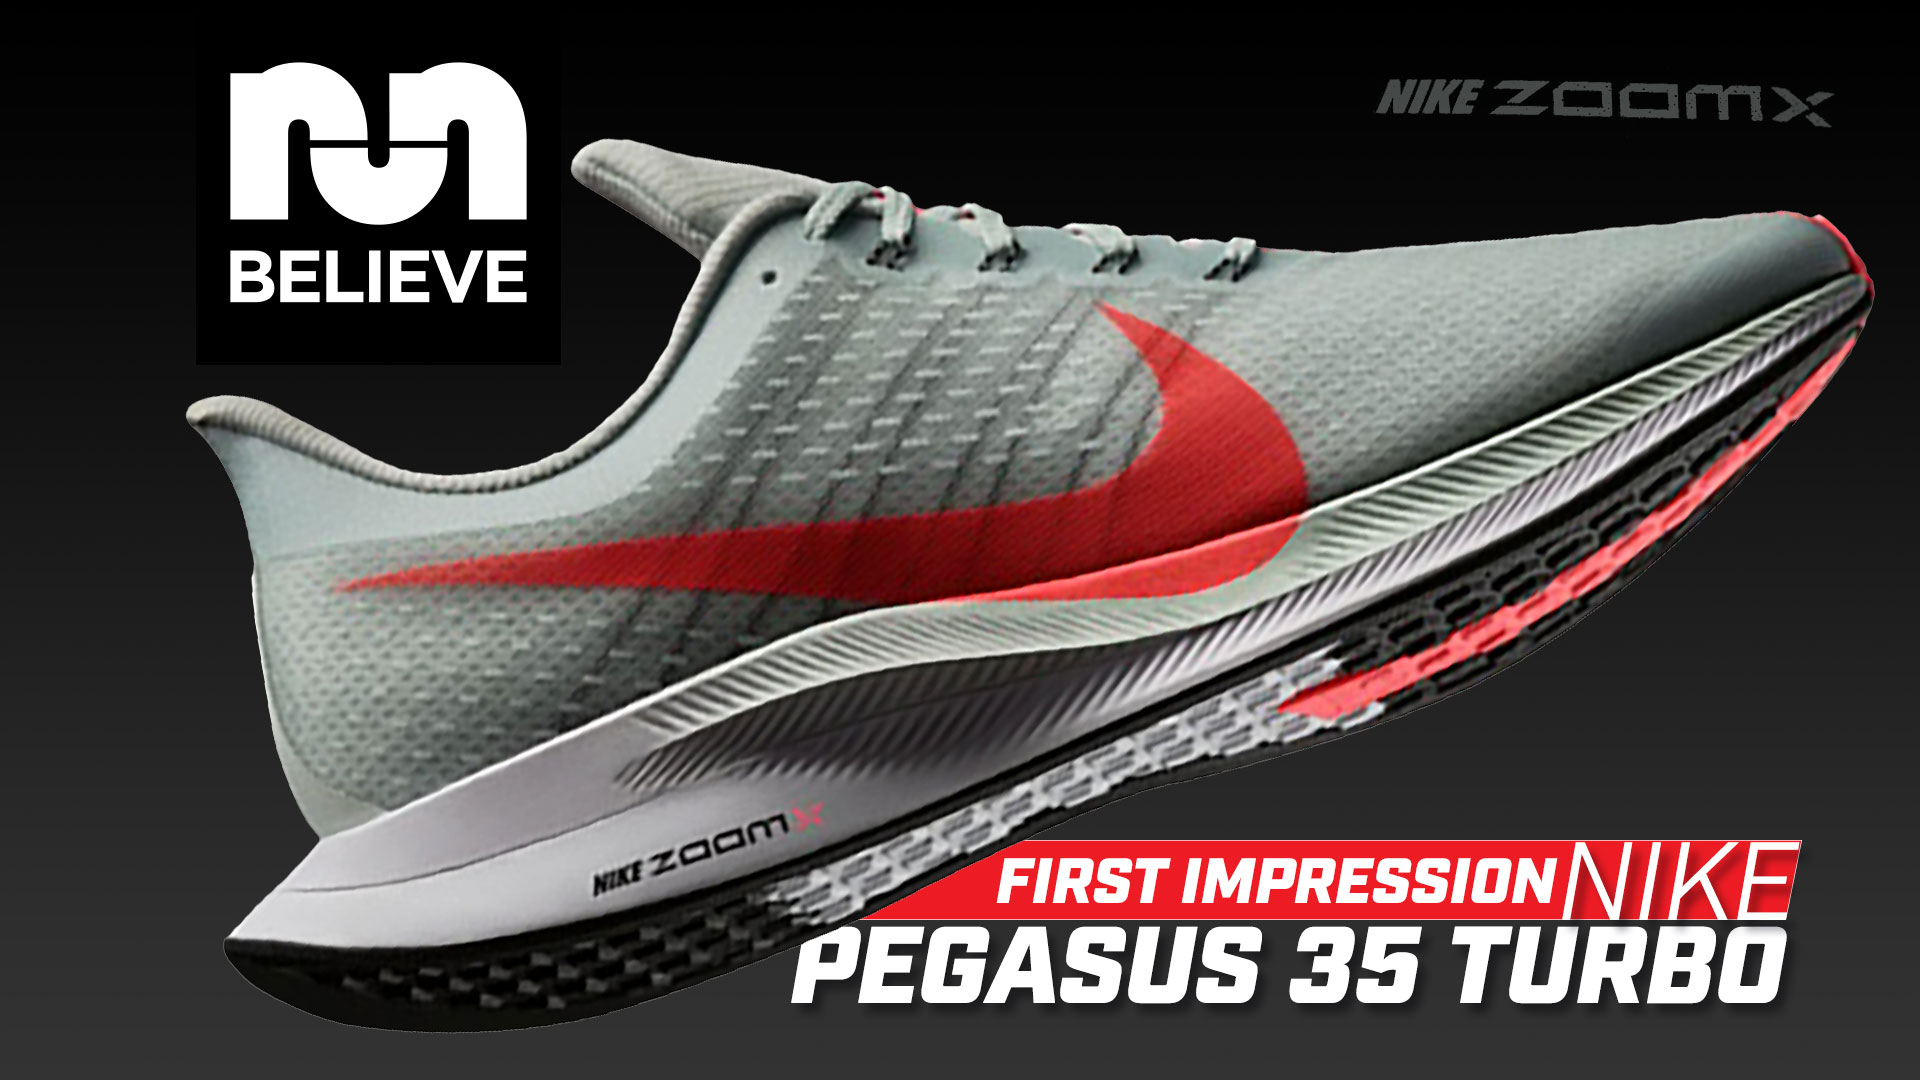 4db6a0a8a First Run in the Nike Pegasus 35 Turbo with Zoom X » Believe in the Run